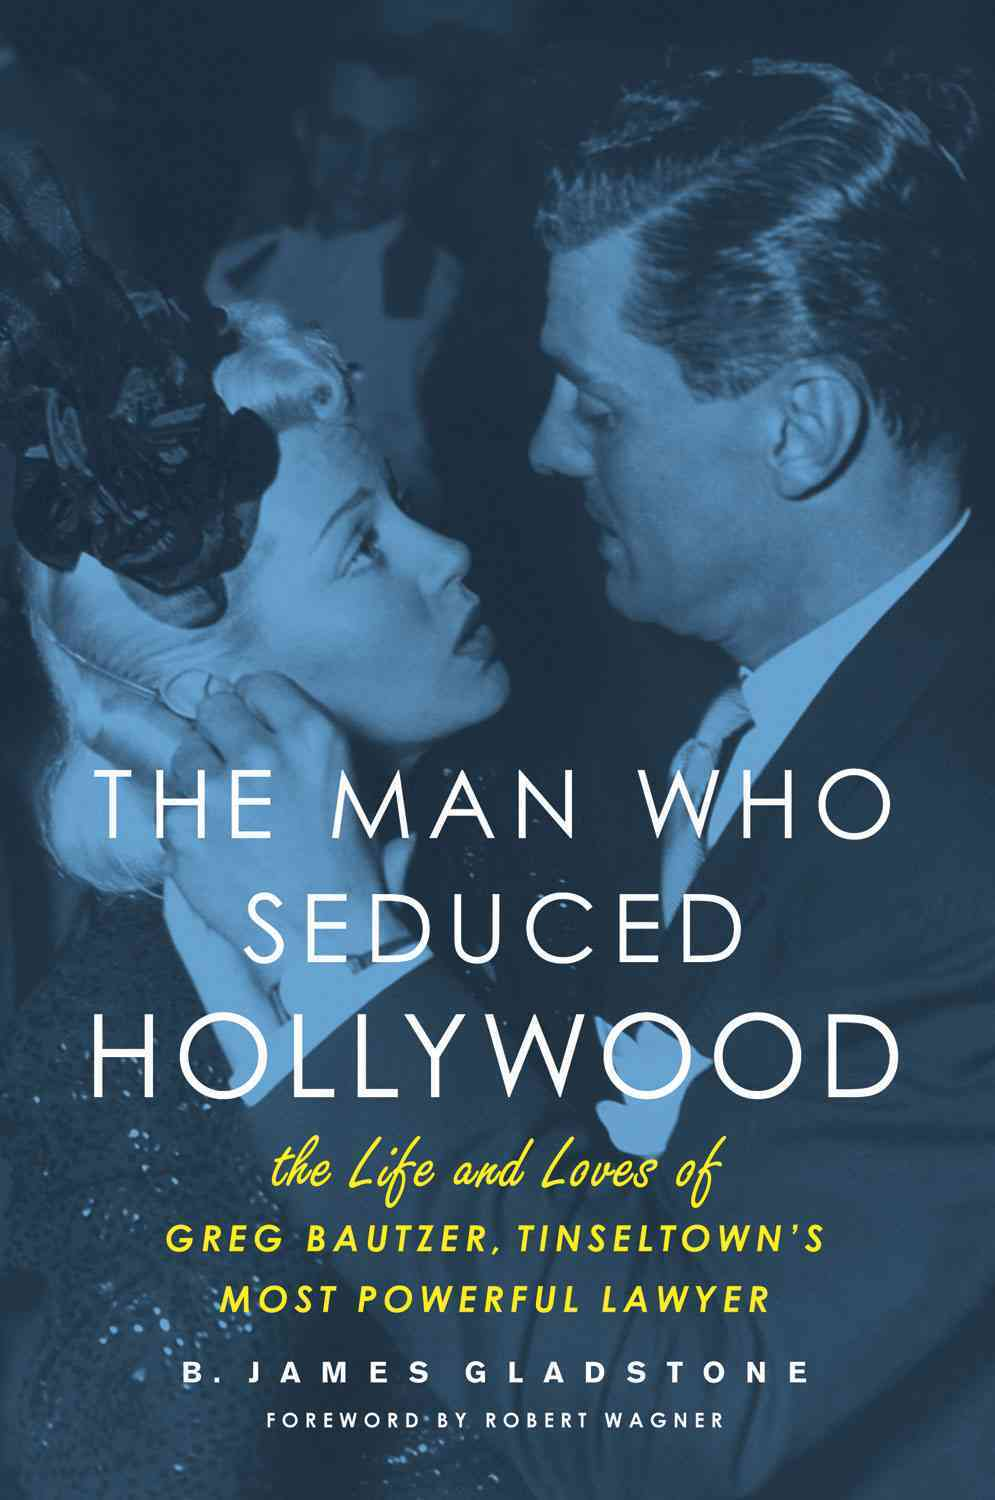 The Man Who Seduced Hollywood: The Life and Loves of Greg Bautzer, Tinseltown's Most Powerful Lawyer (Hardcover)